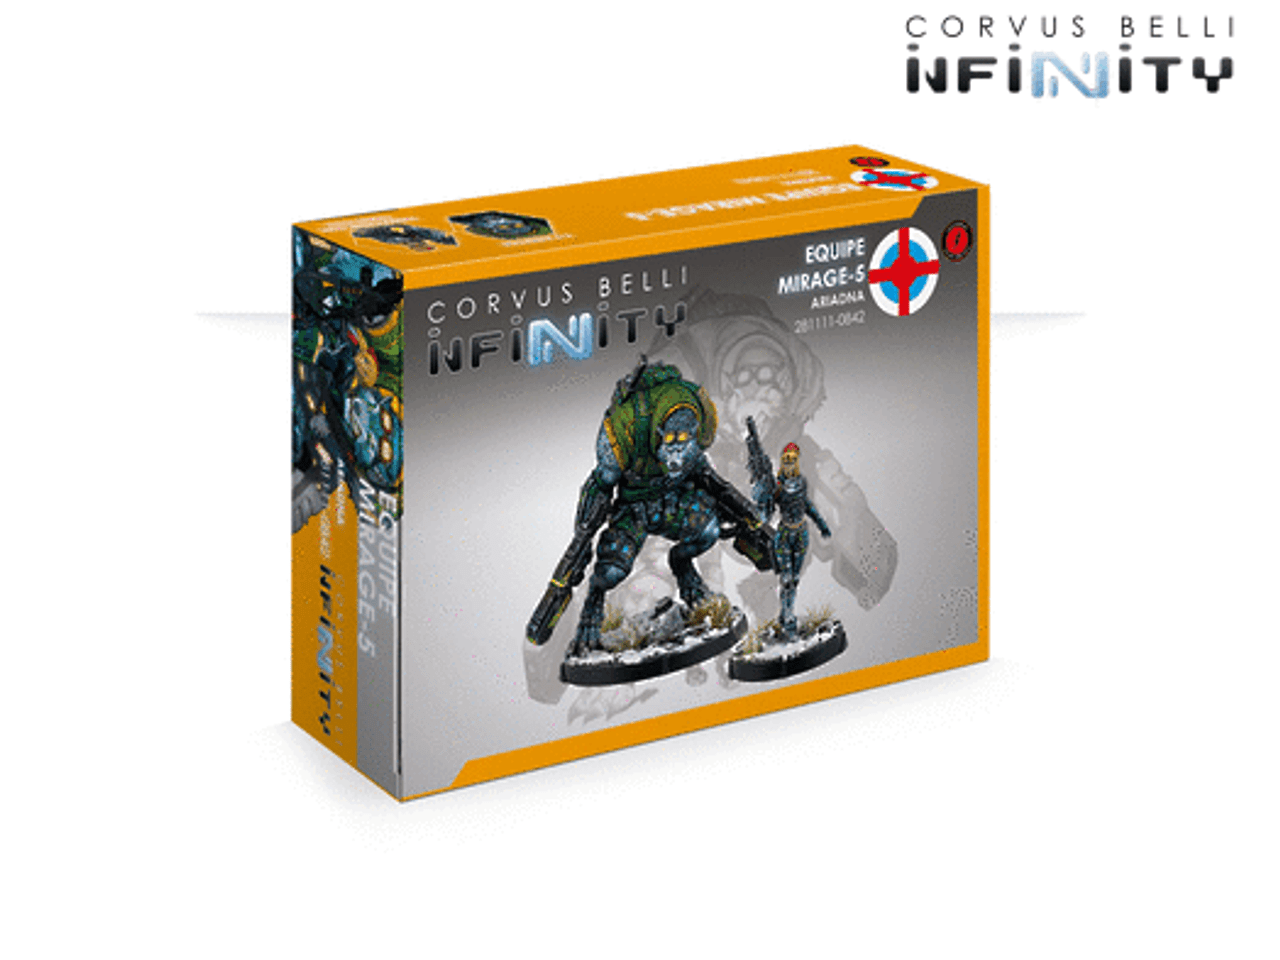 Infinity Ariadna Equipe Mirage-5